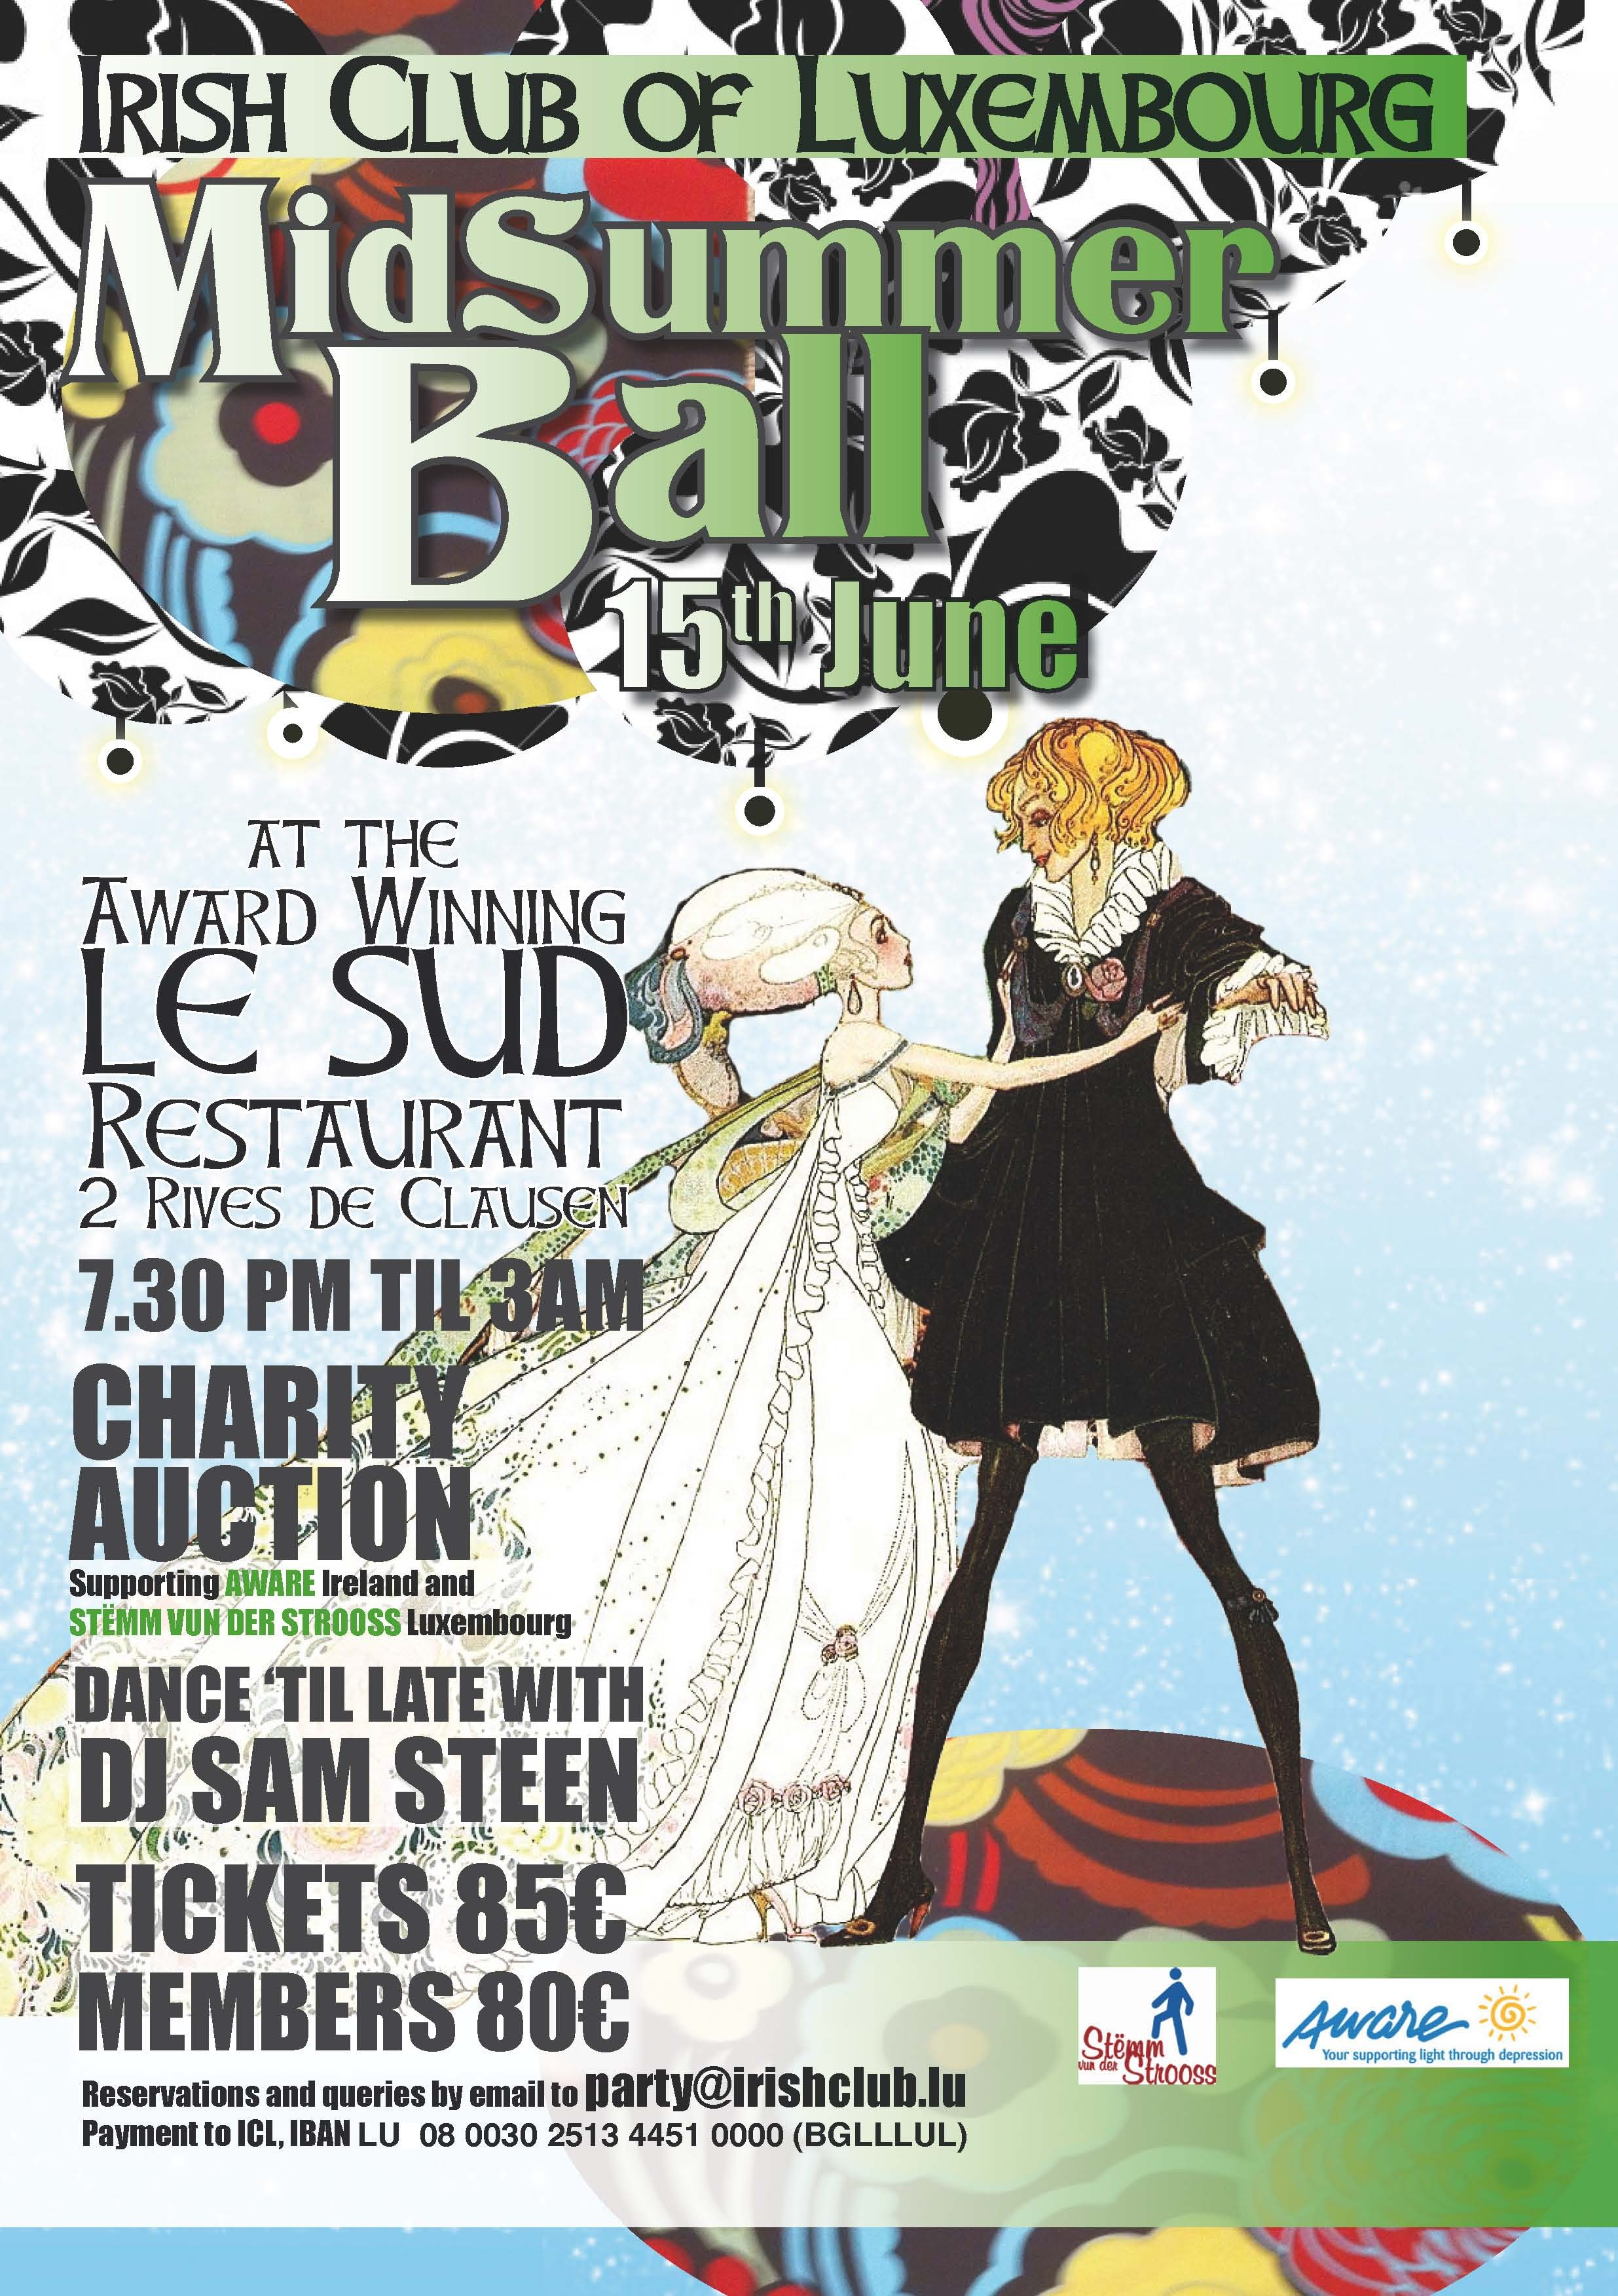 Irish Club of Luxembourg Midsummer Ball on Saturday 15 June 2013 at Restaurant Le Sud from 7.30 pm